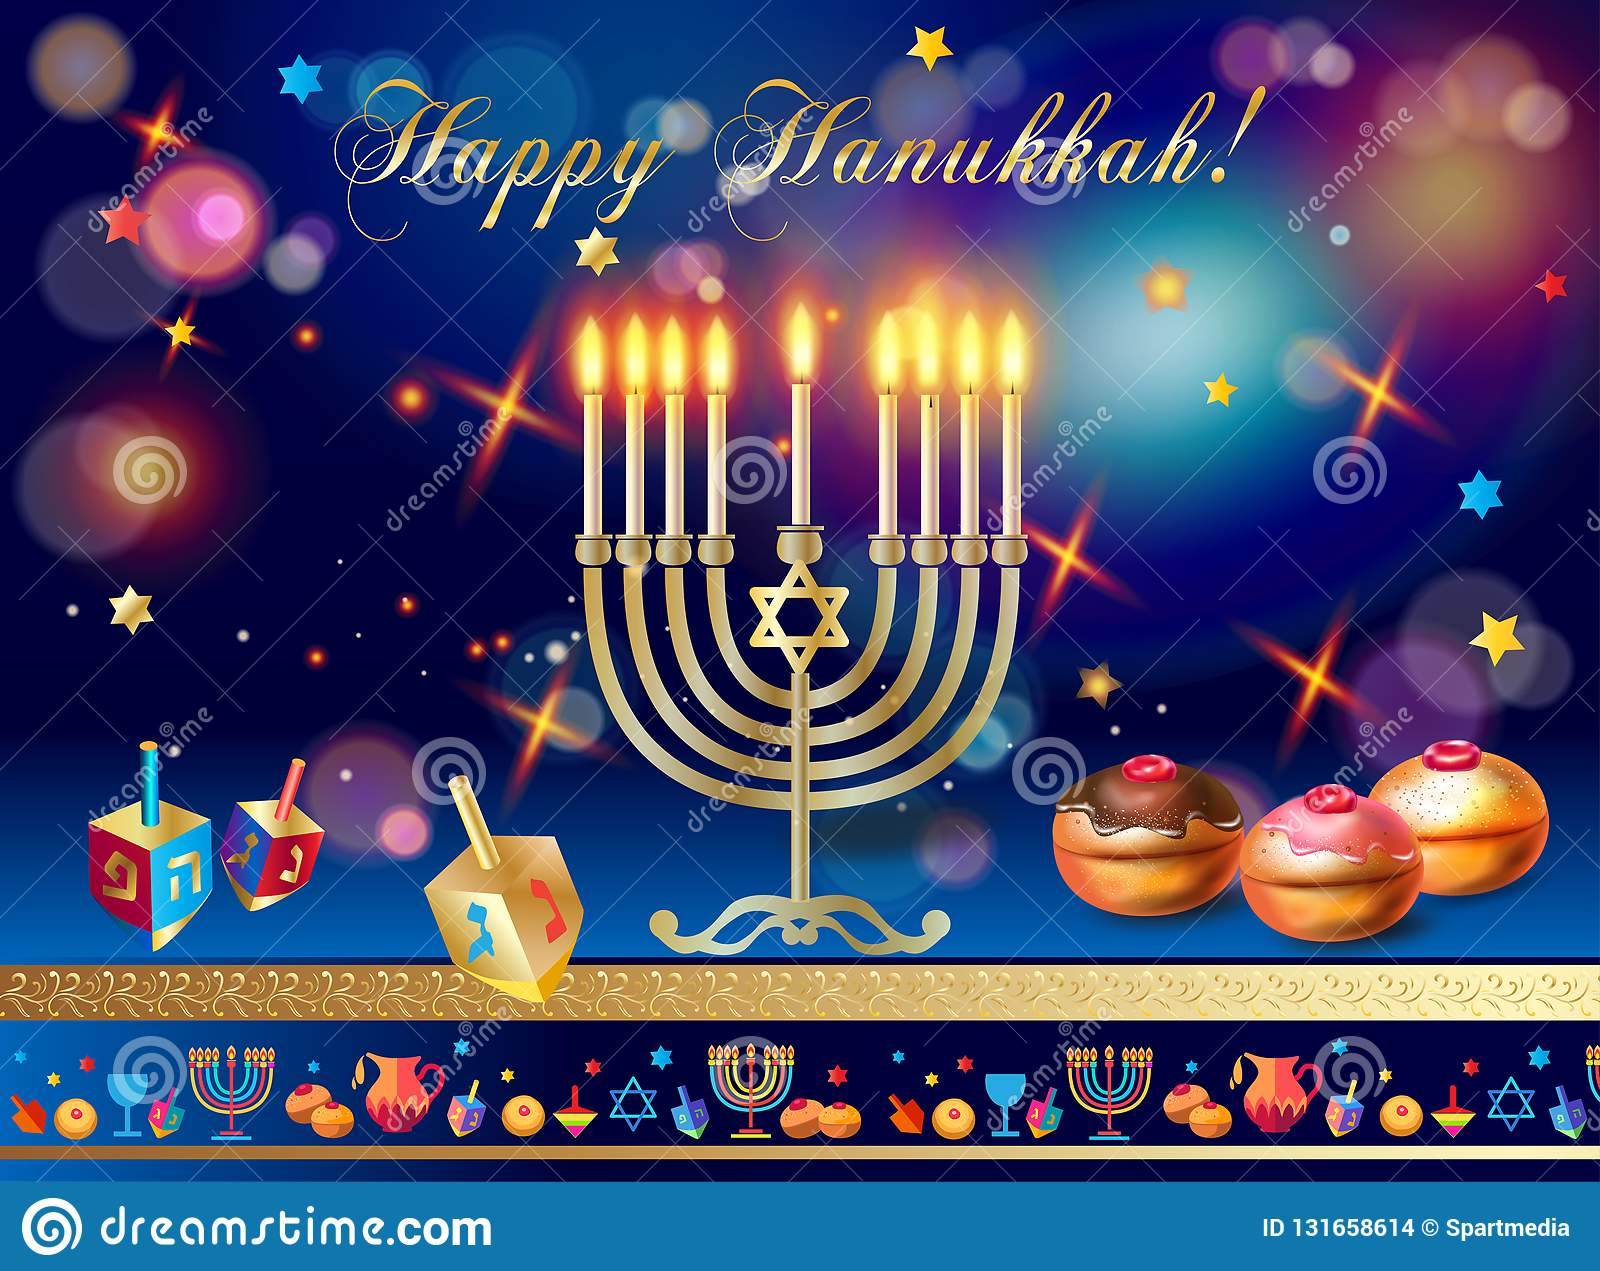 Happy Hanukkah Gold Menorah, Baked Donuts With Blueberry And Confetti  Chocolate Glaze, Wood Dreidel Stock Vector - Illustration of bokeh,  background: 131658614